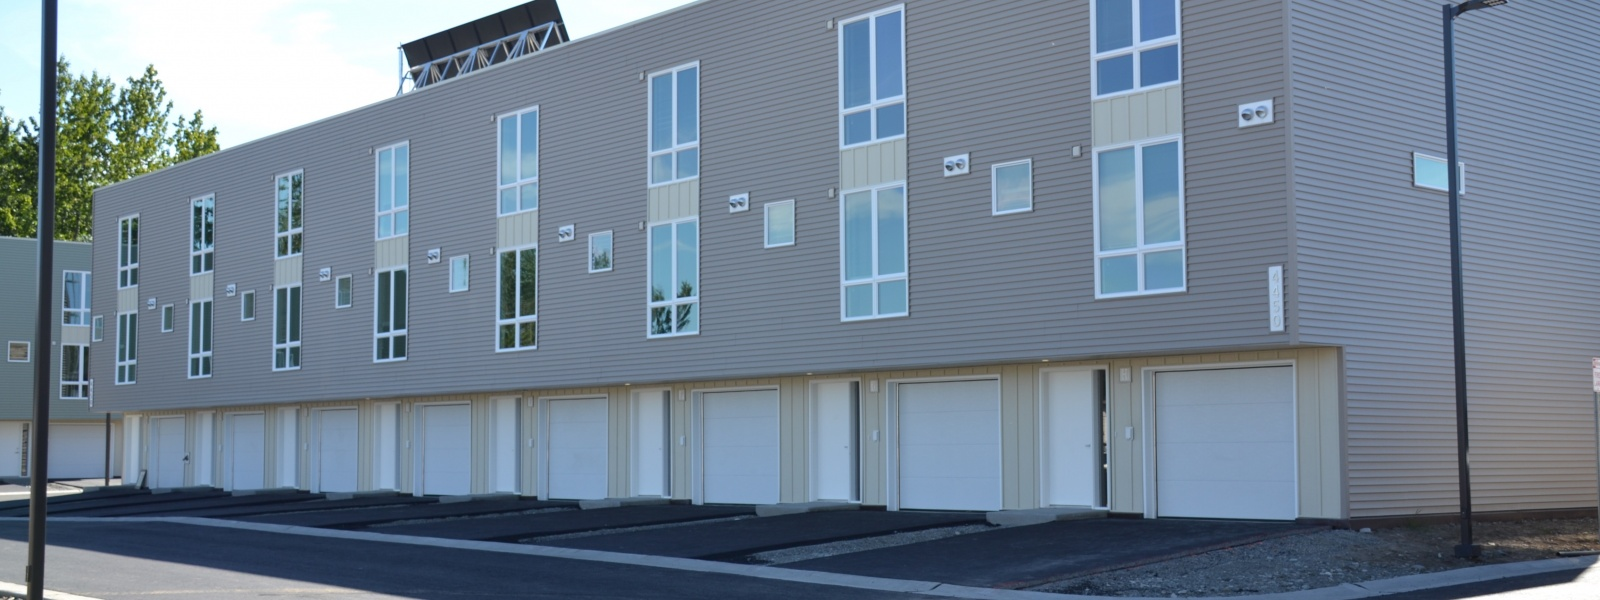 4450 San Roberto Ave, Anchorage, Alaska, 99504, 1 Bedroom Bedrooms, ,1 BathroomBathrooms,Townhome,For Rent,San Roberto Ave,1033